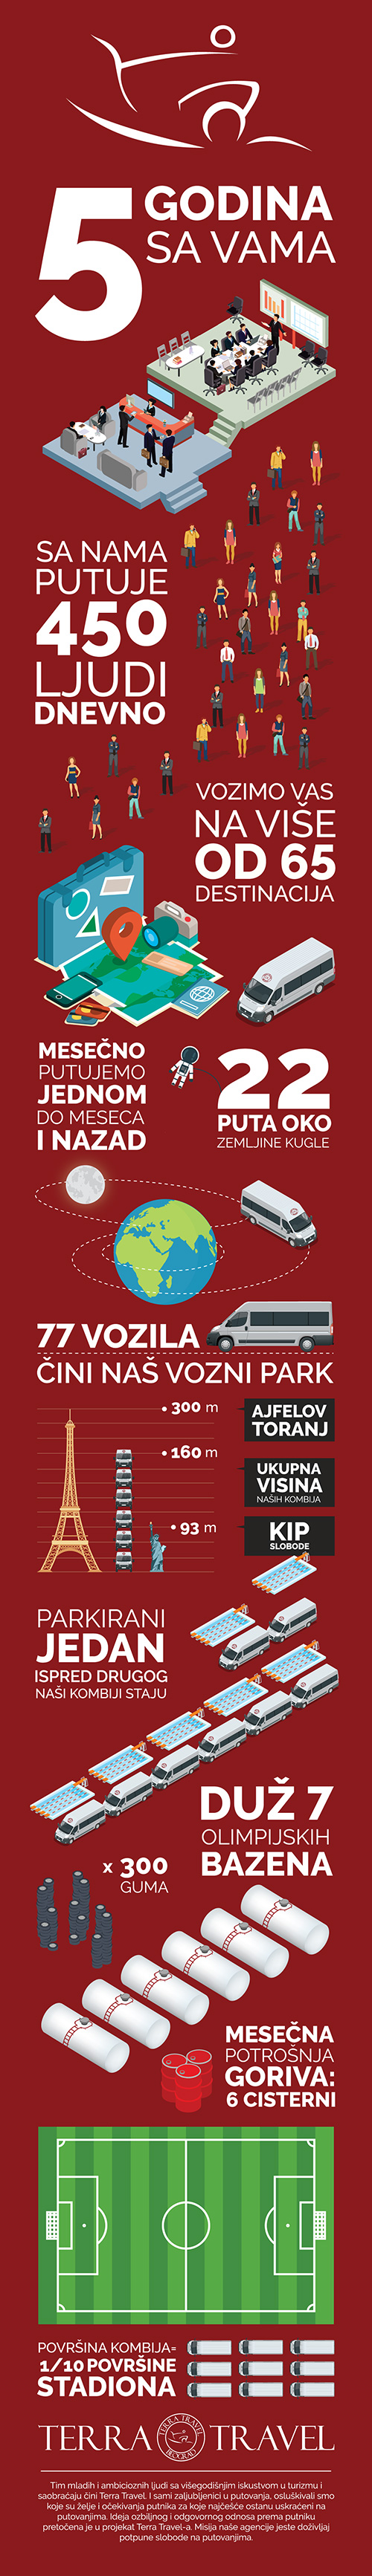 Terra-Travel---Infographic